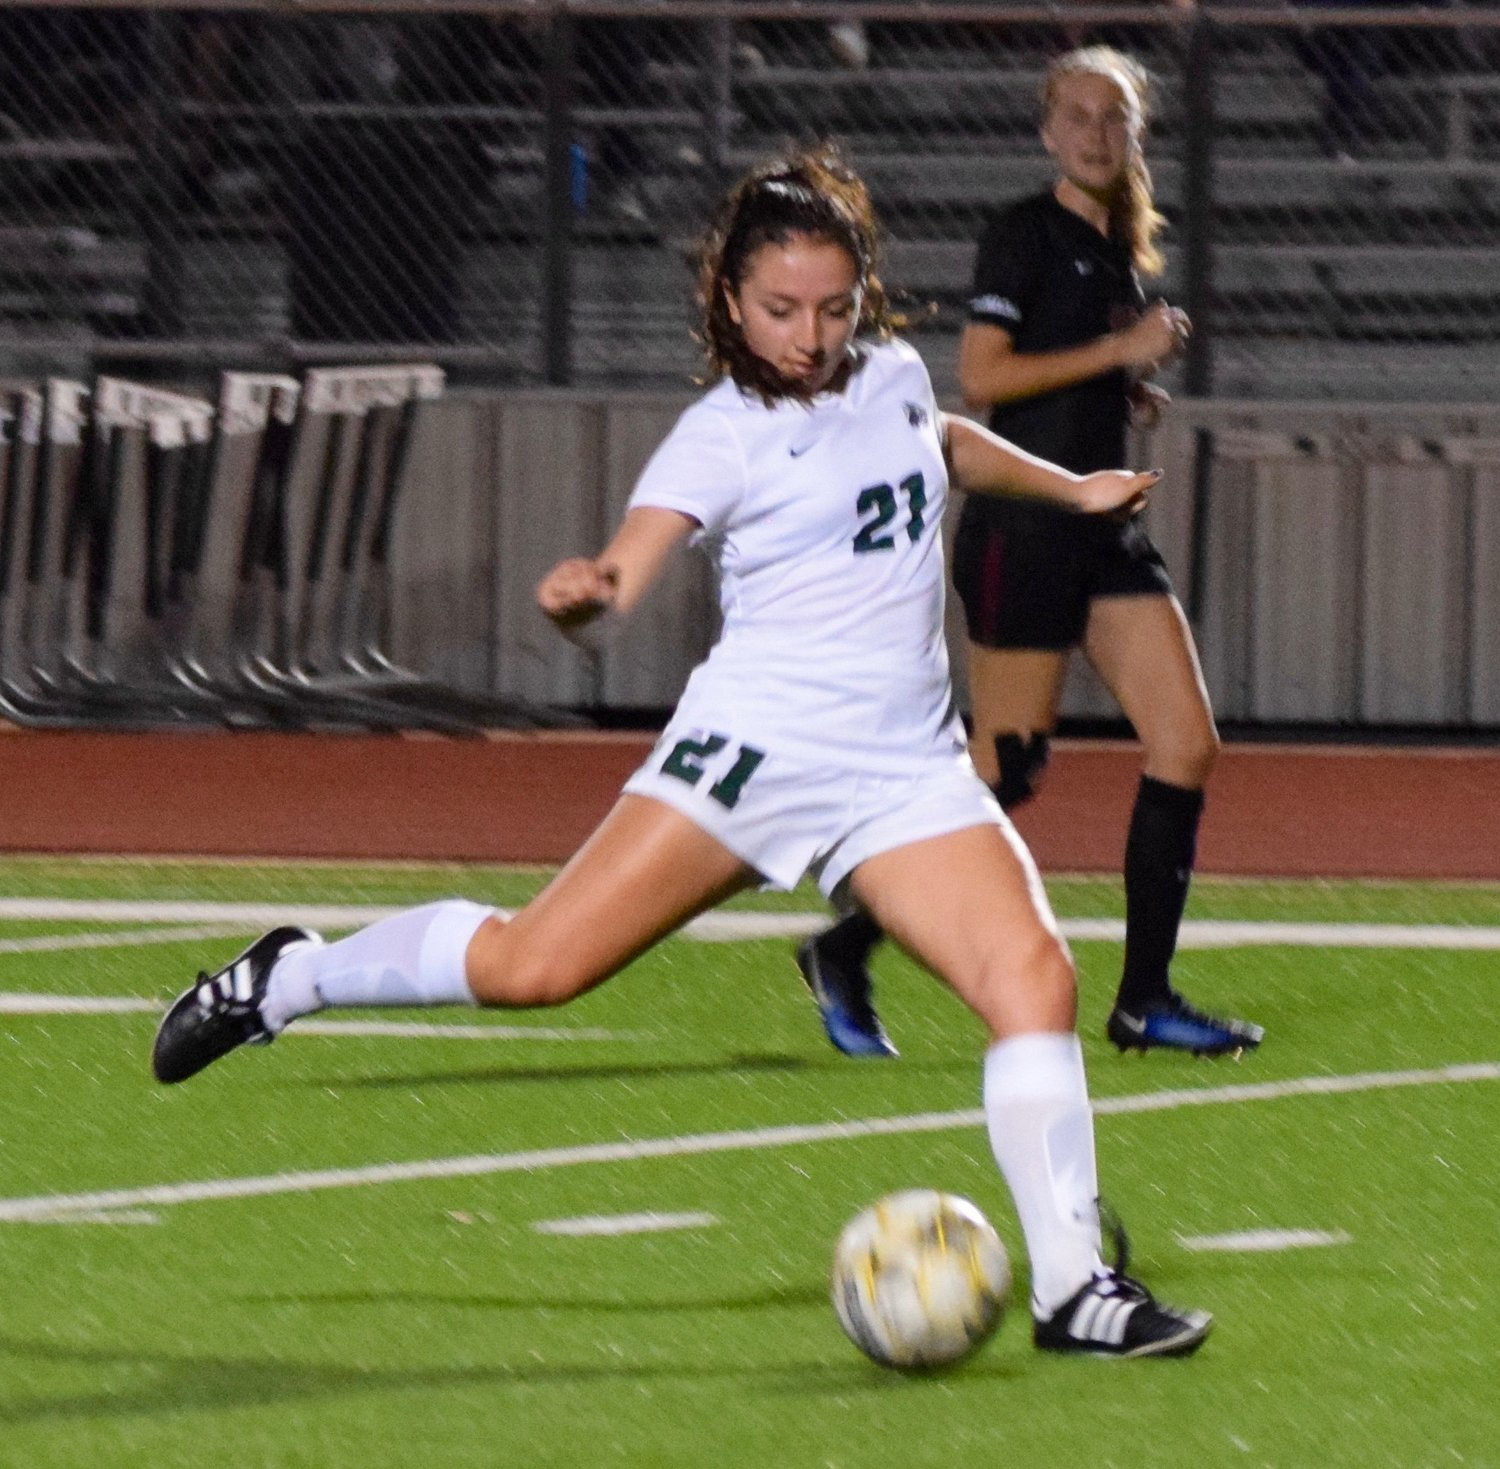 Breland Mungia scored two goals and Cedar Park beat Rouse 4-1 on Friday night.